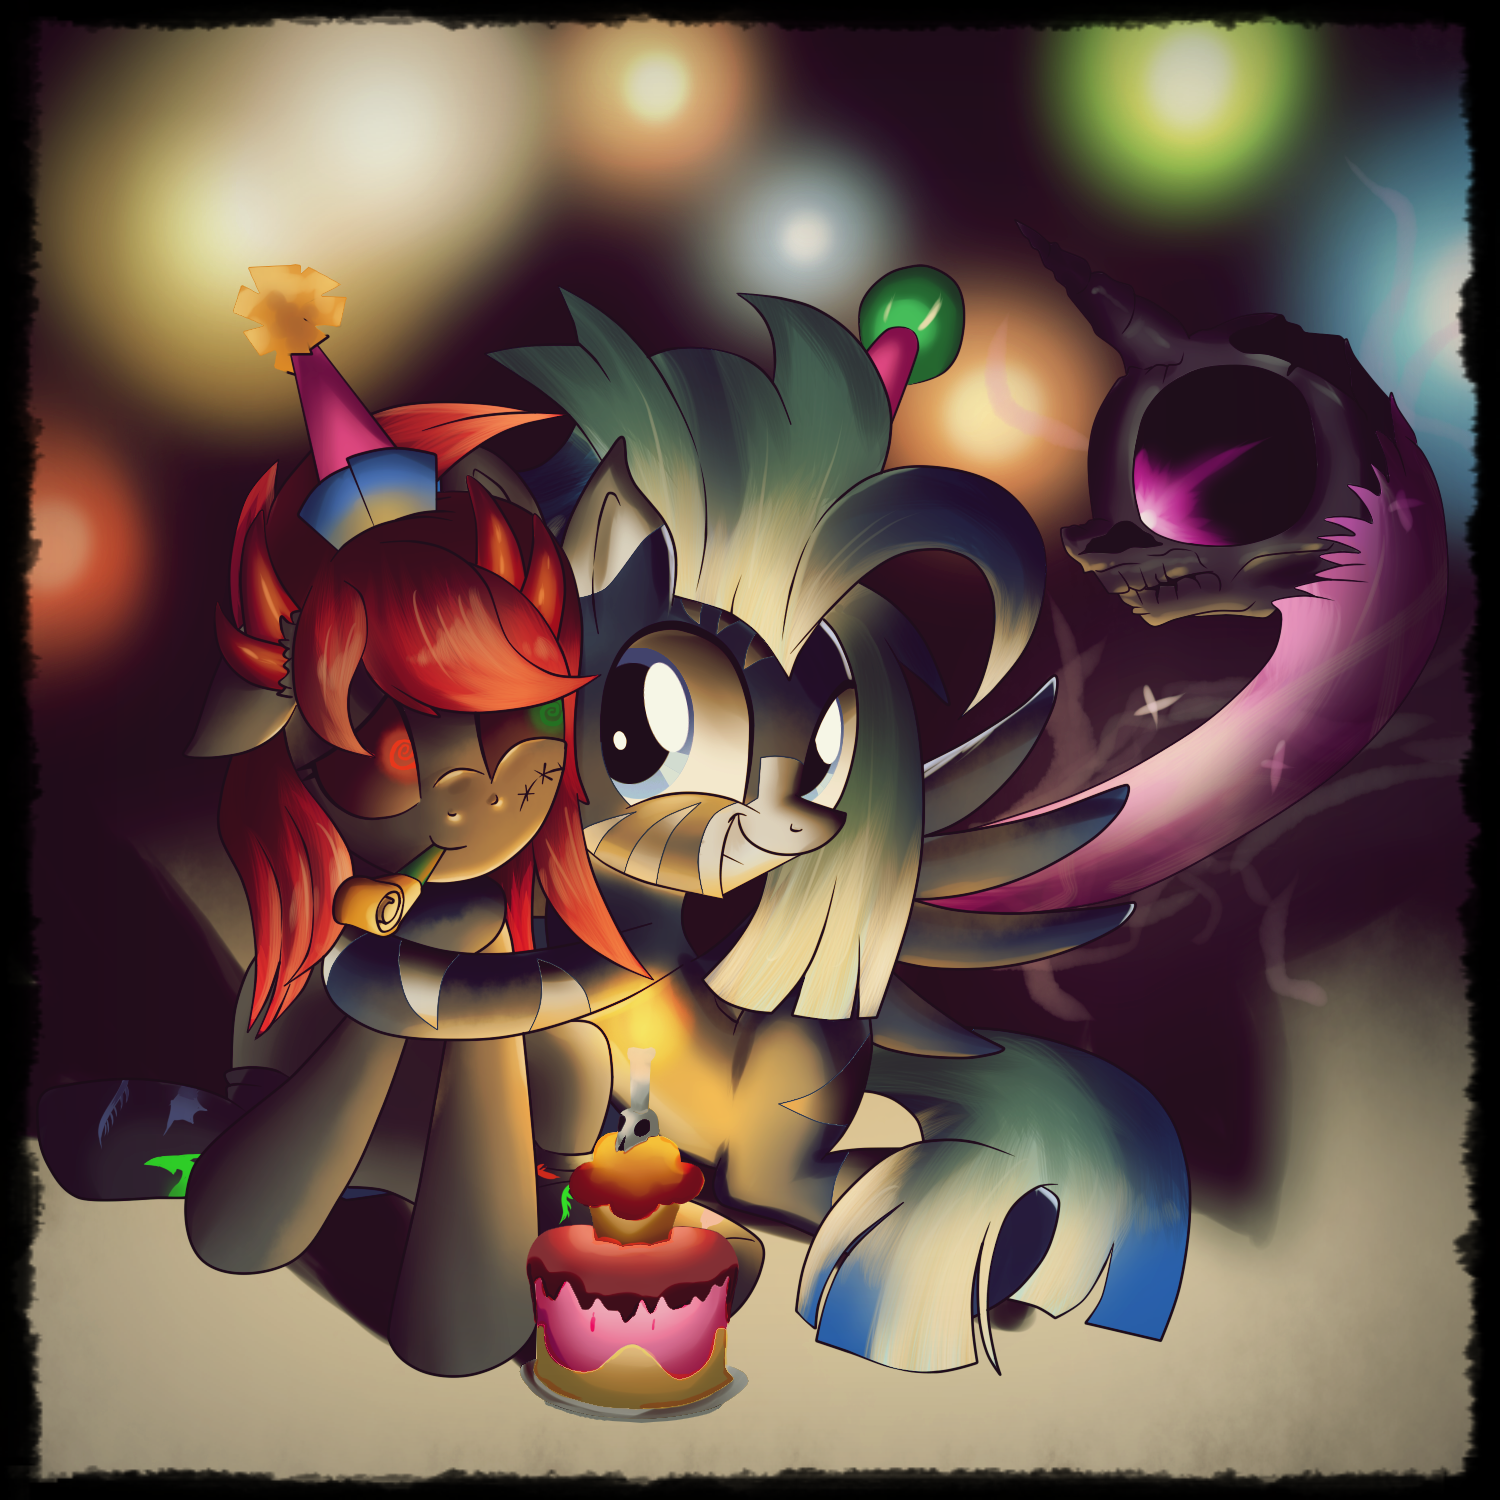 Late birthday gift for Spiderwick